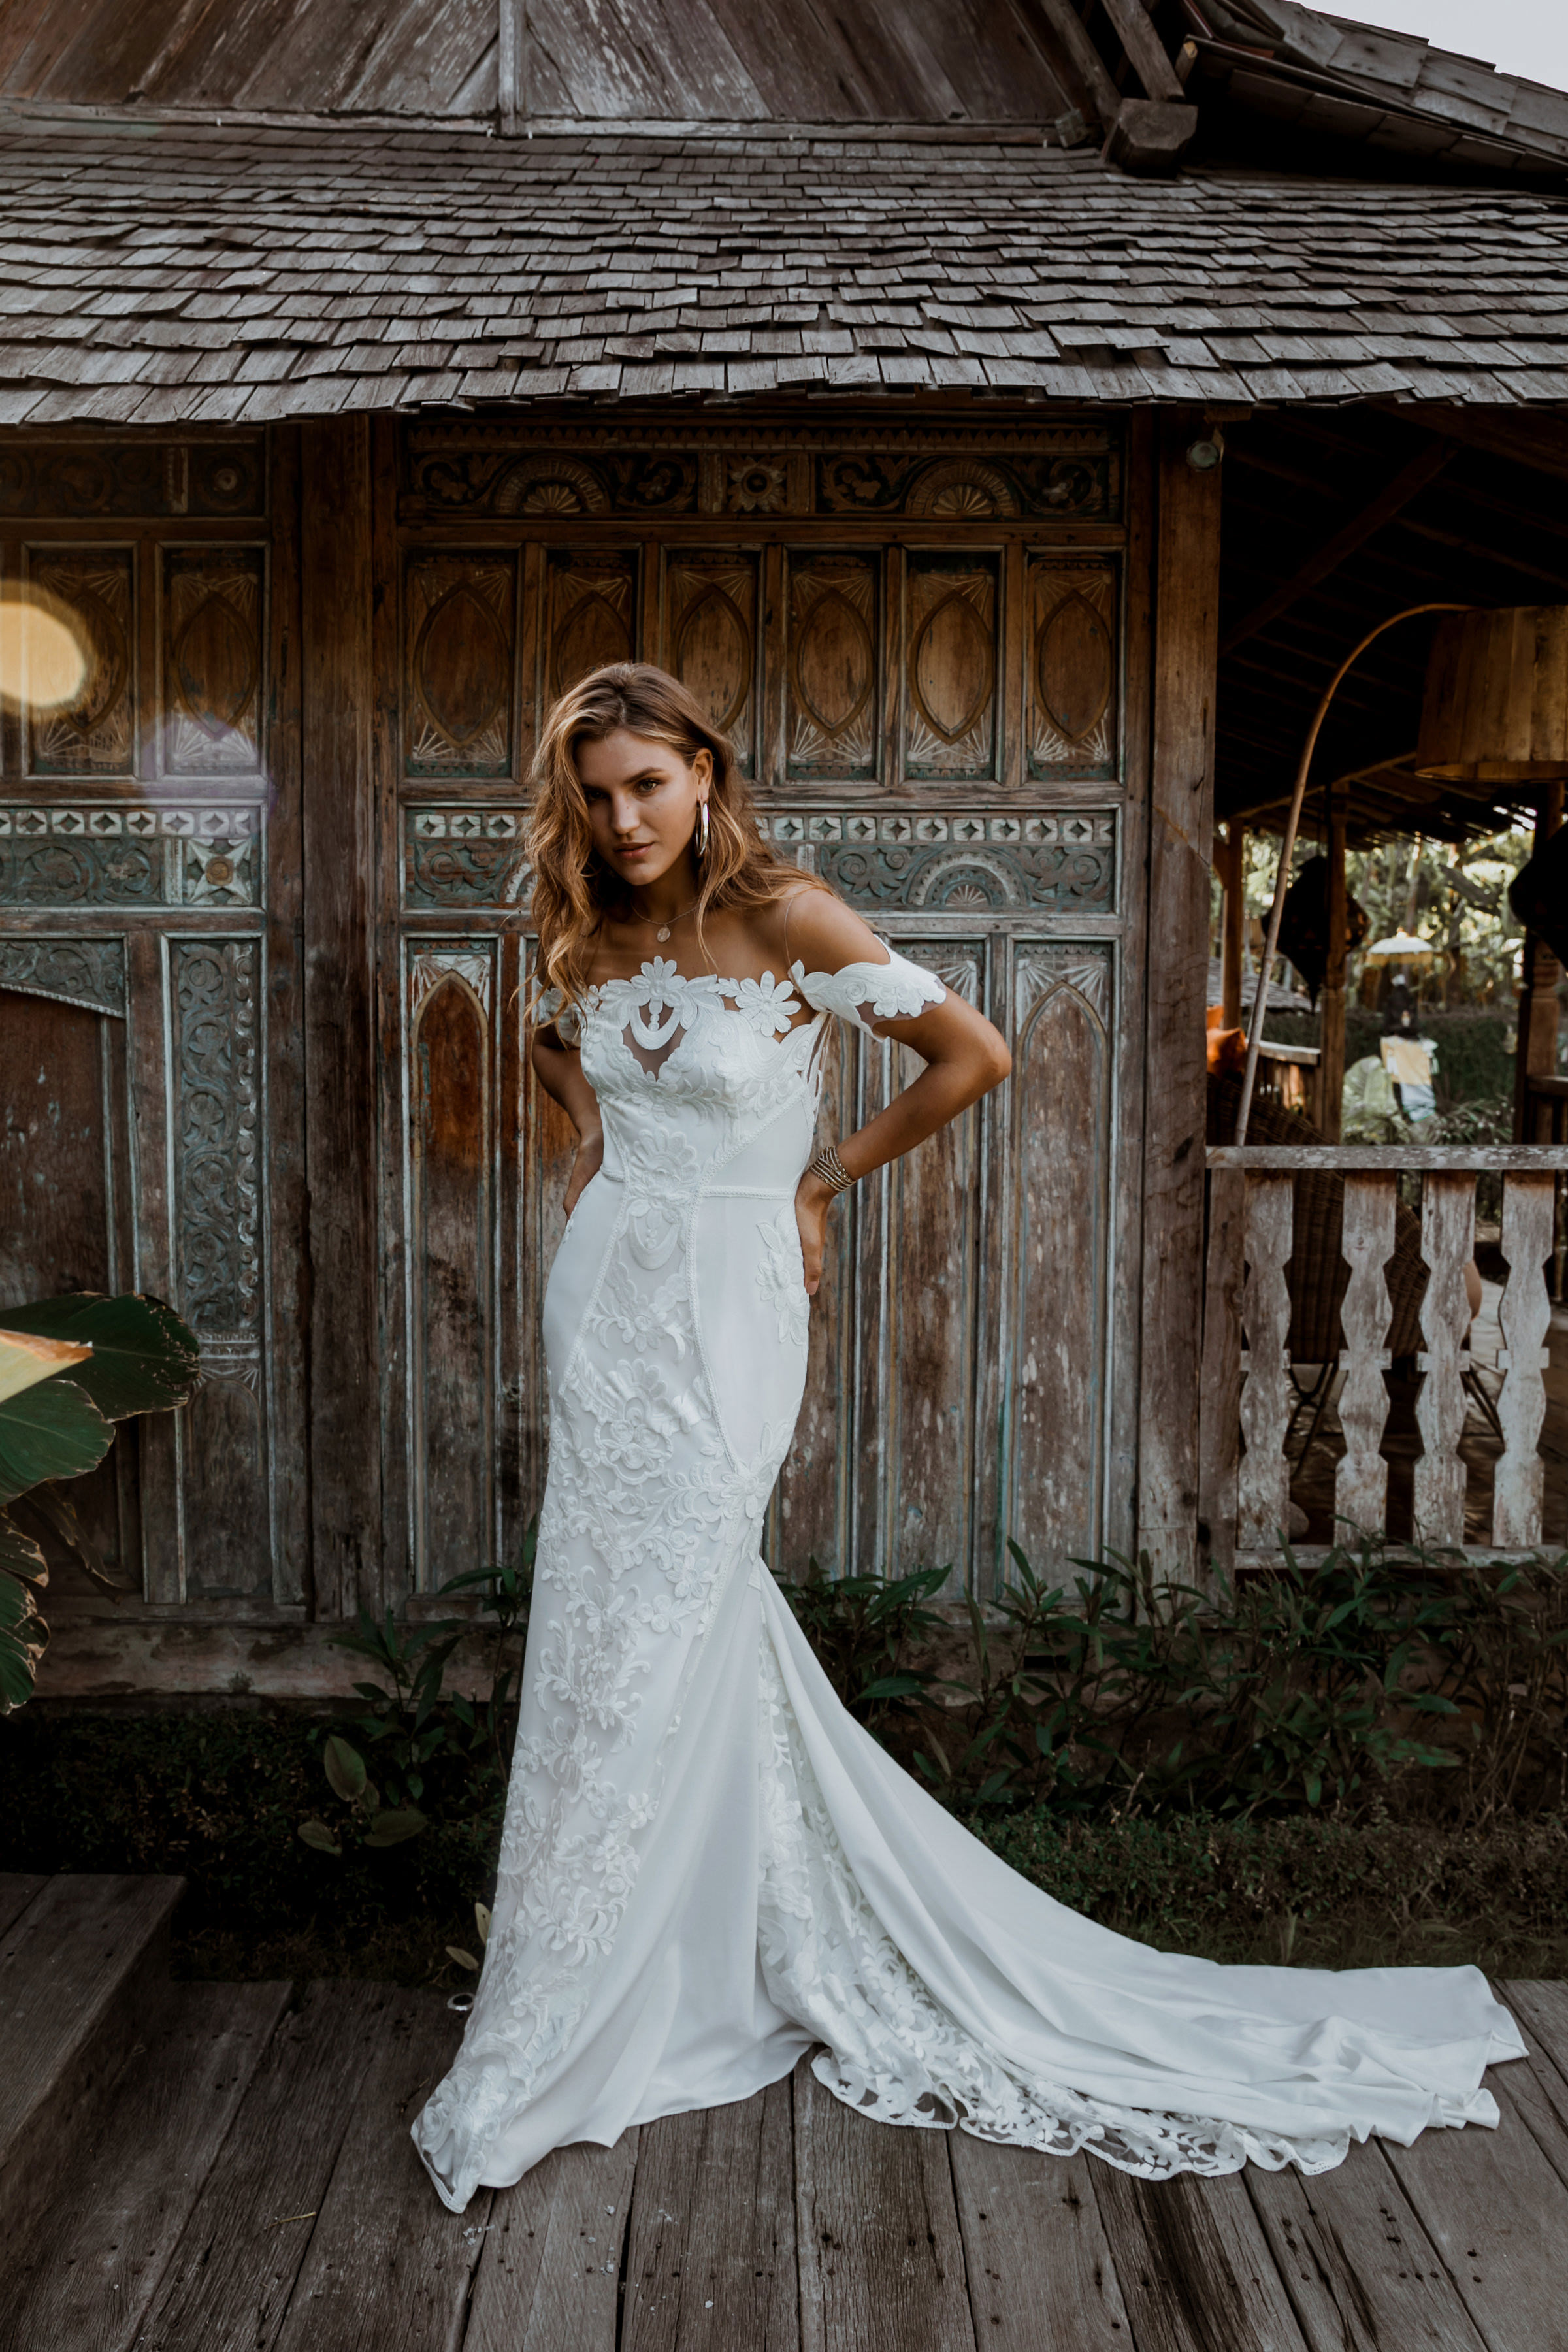 Harley lovers society wedding dresses Wedding Dress wedding dresses bridal shop store gowns christchurch wellington